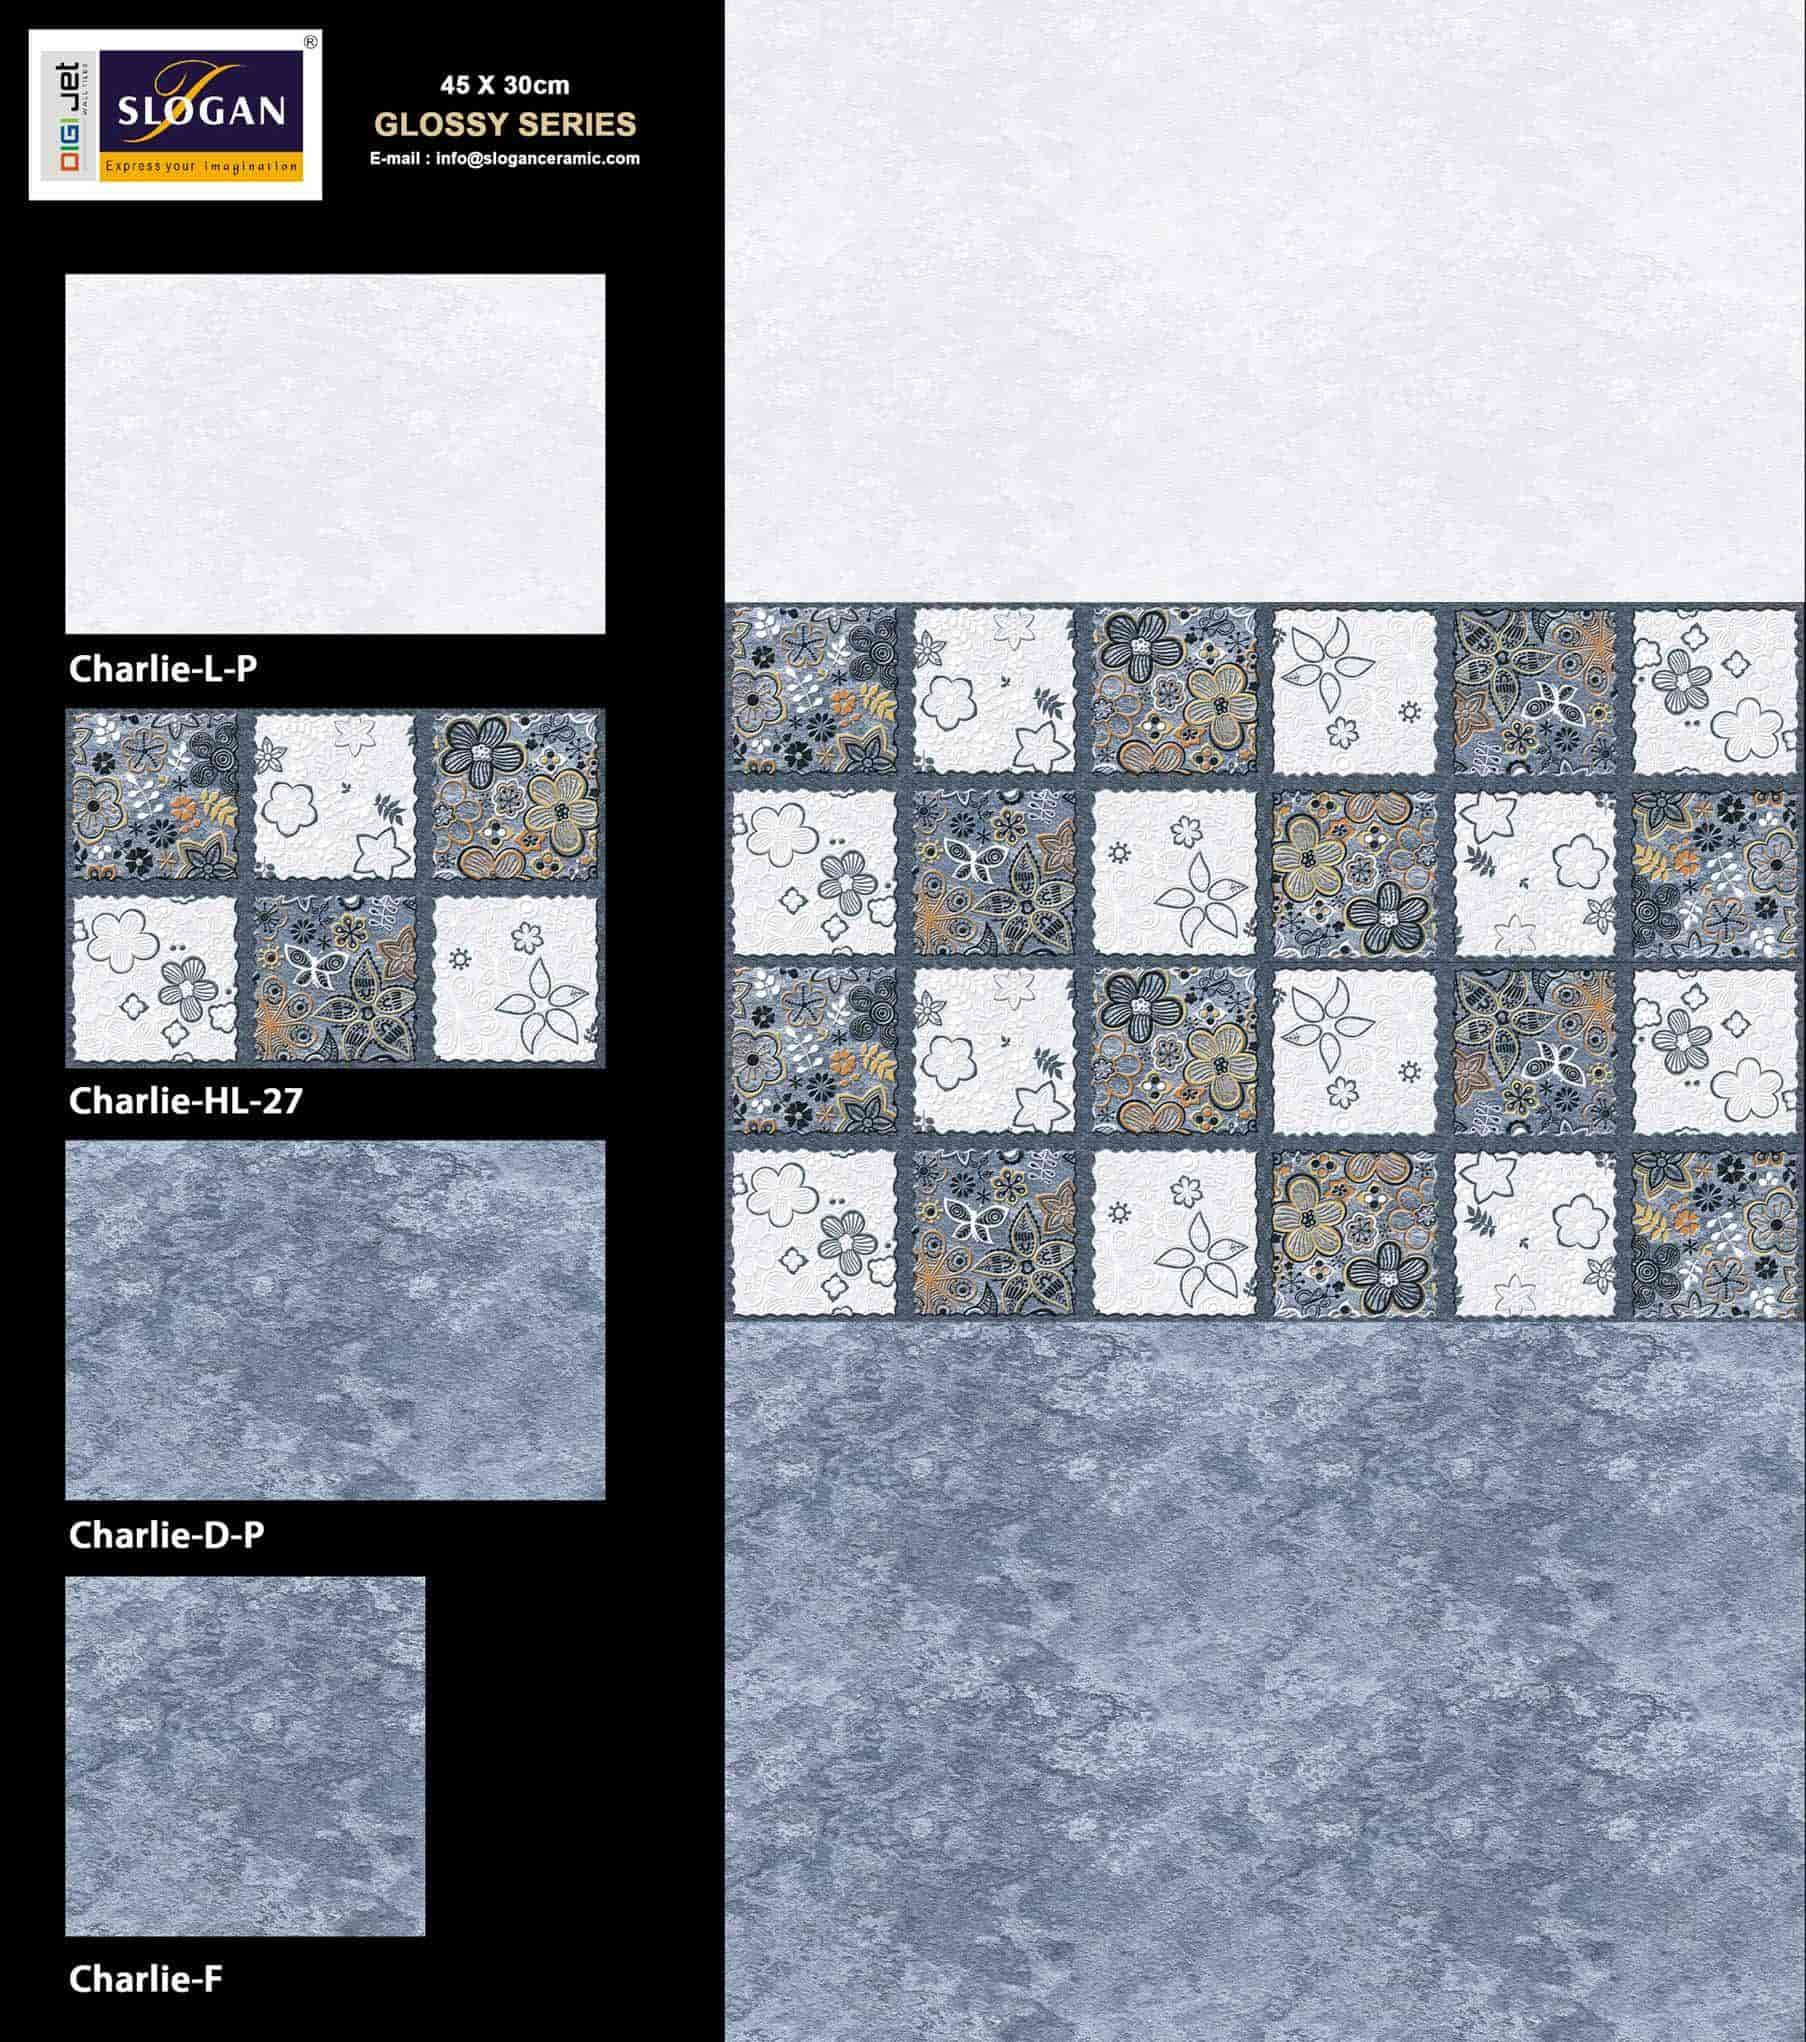 How to remove ceramic tile from wall choice image ceramic tile ceramic tile image collections dailygadgetfo Choice Image